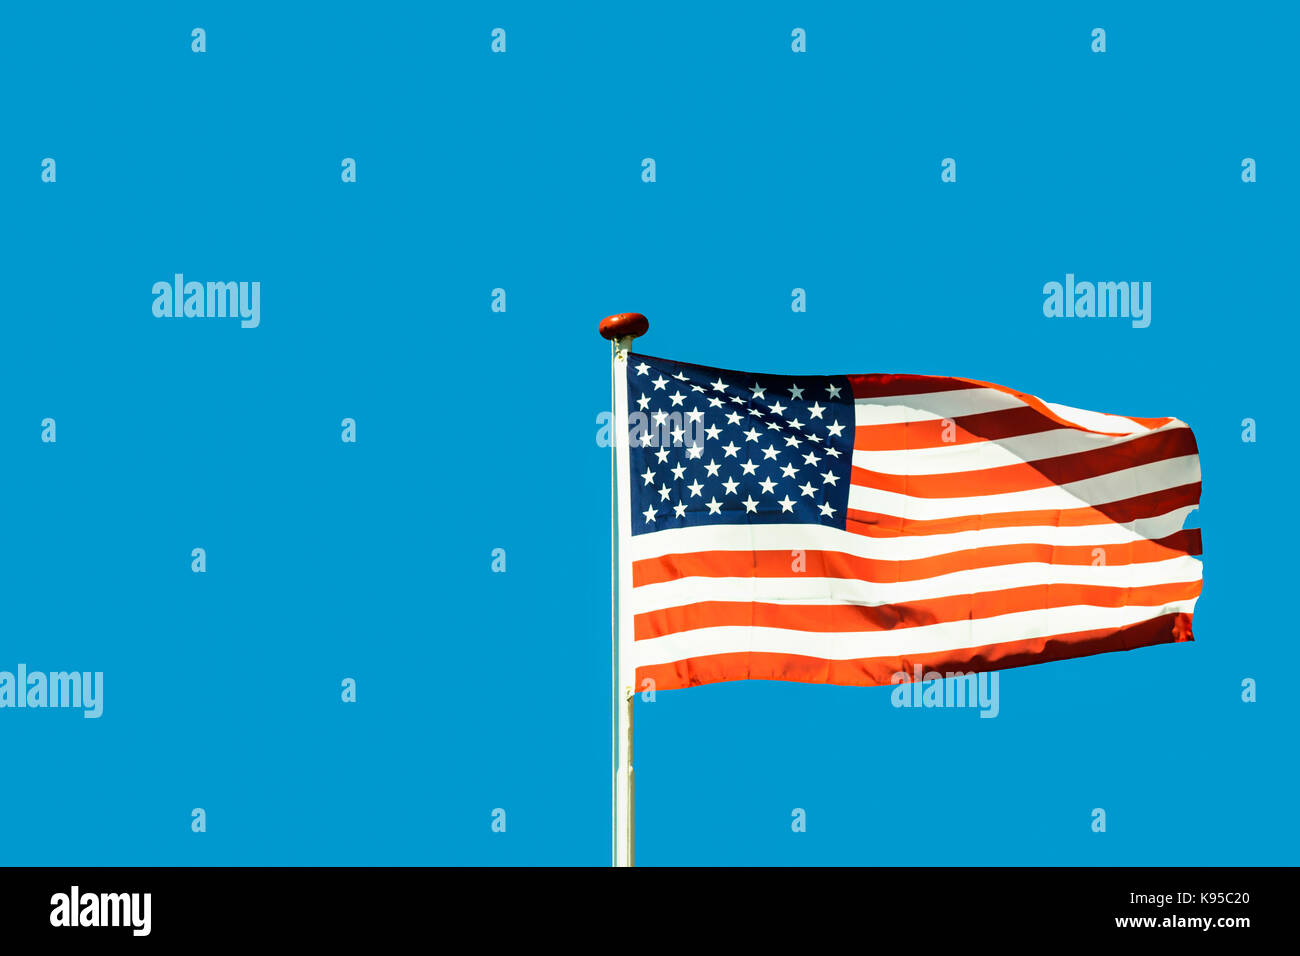 Flag of the United States - Stock Image